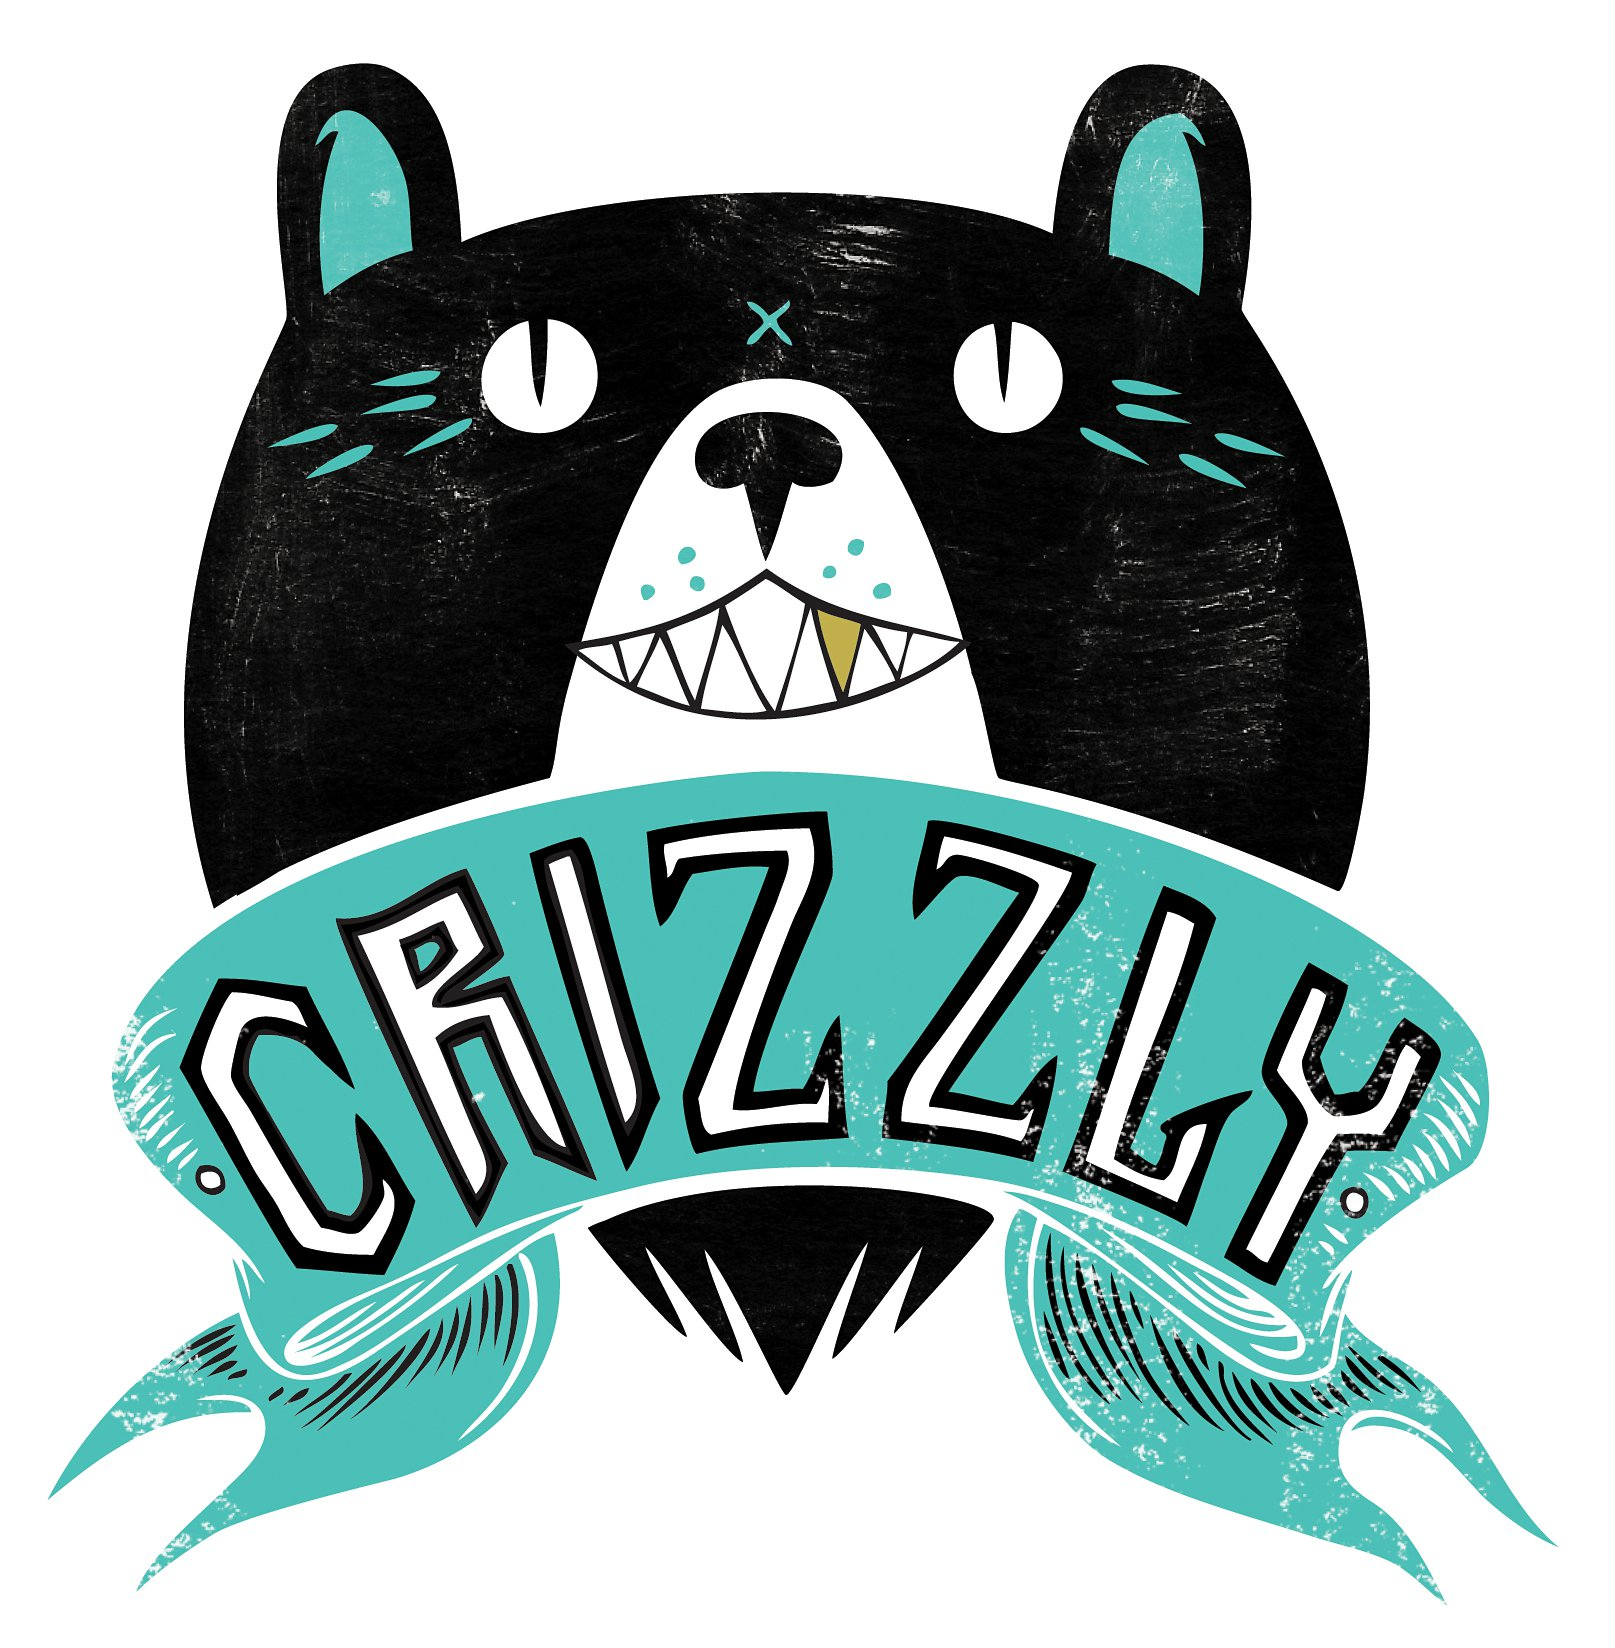 Crizzly Profile Link